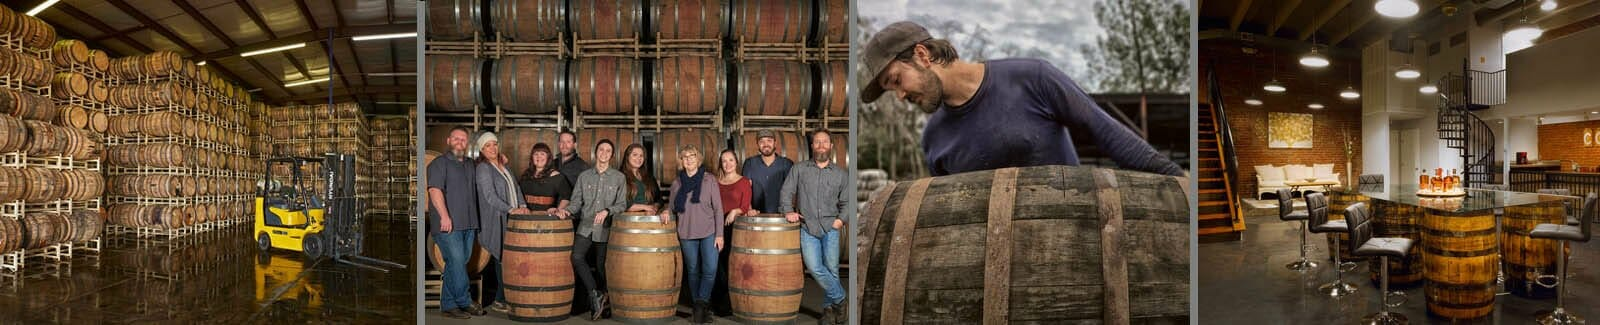 Country Connection is a barrel broker and cooperage with locations in Kentucky and California